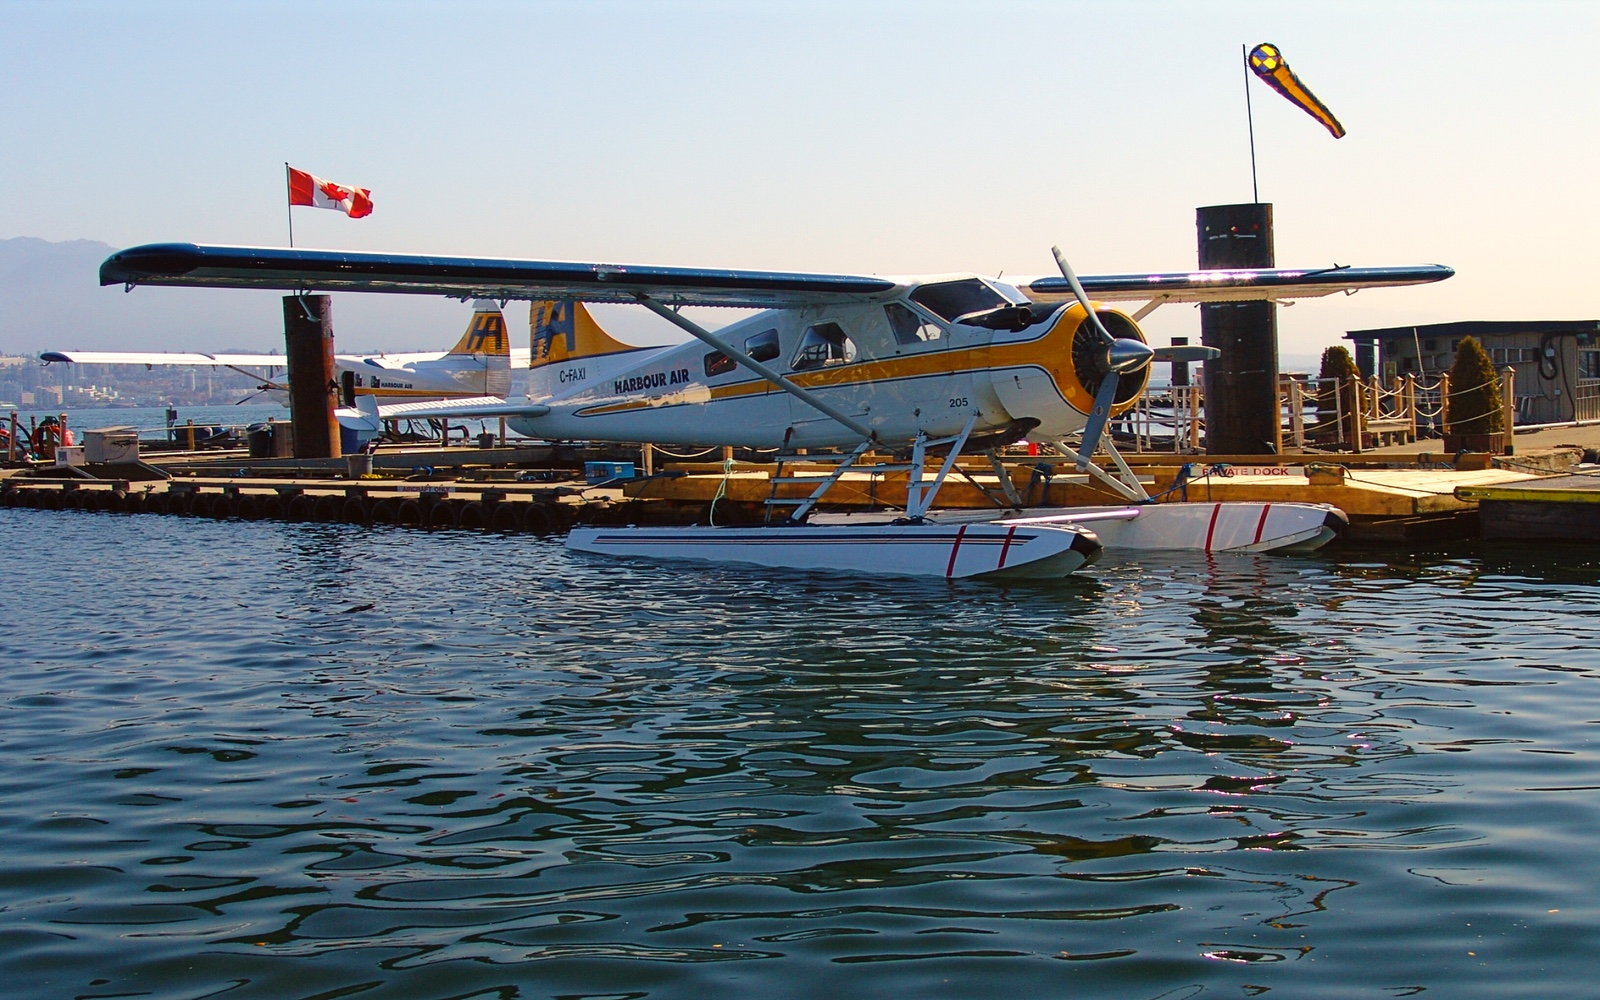 A Harbour Air floatplane sits in Vancouver Harbour